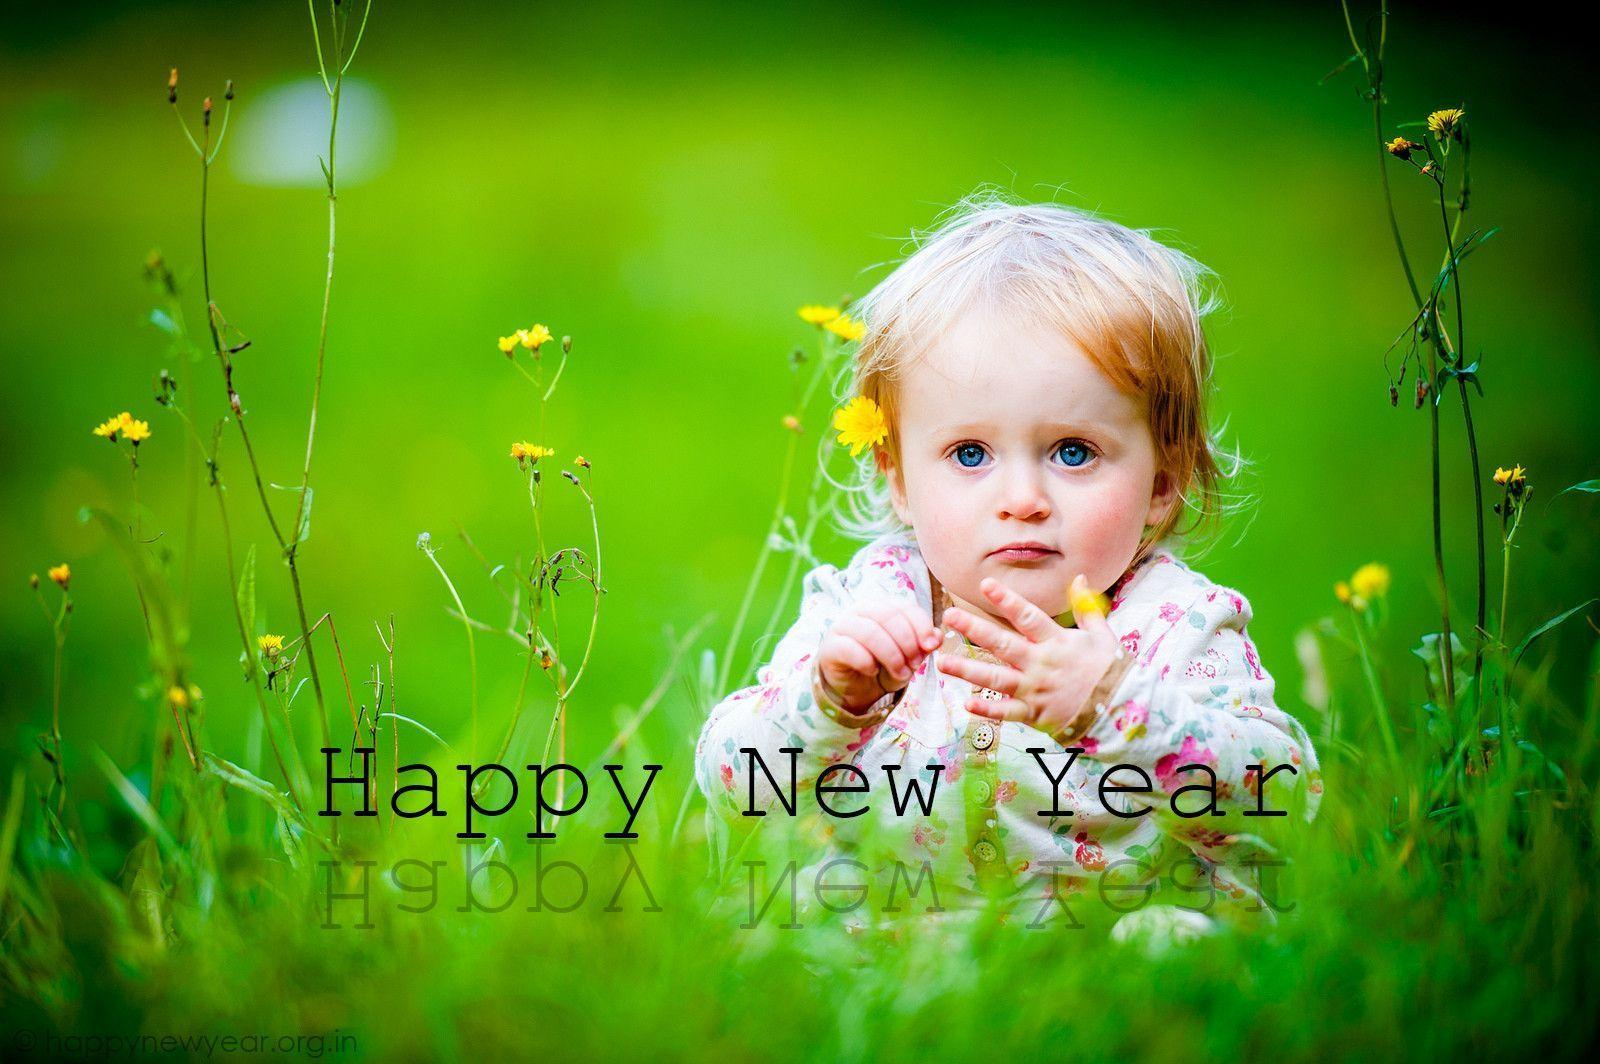 Cute babies Happy New Year 2015 Wallpapers in HD